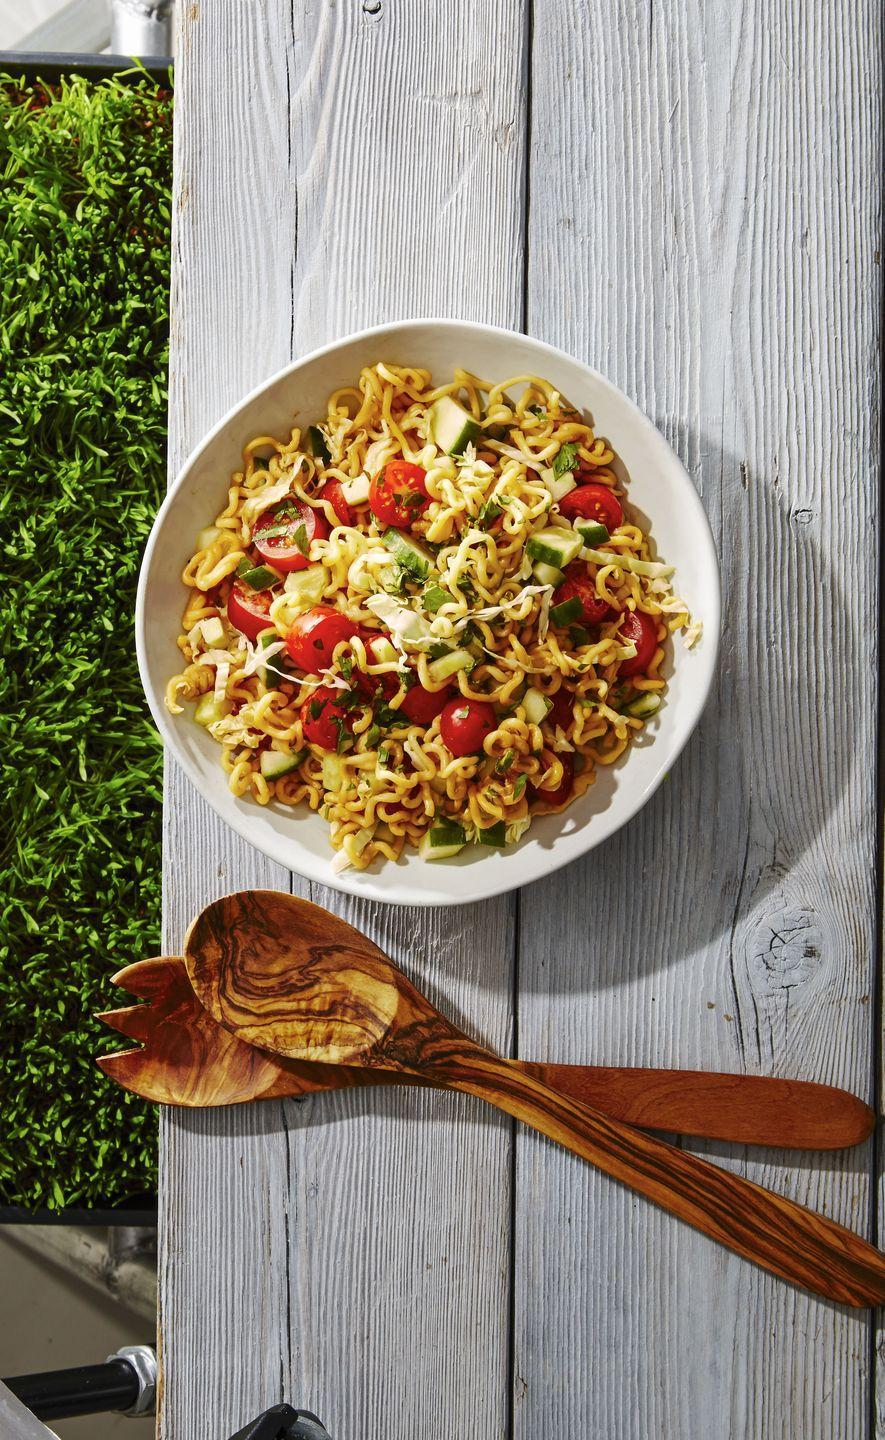 """<p>Your college staple has received a major (read: healthy) upgrade thanks to fresh cucumbers, tomatoes, and cabbage.</p><p><em><a href=""""https://www.goodhousekeeping.com/food-recipes/a39330/honey-lime-ramen-salad-recipe/"""" rel=""""nofollow noopener"""" target=""""_blank"""" data-ylk=""""slk:Get the recipe for Honey-Lime Ramen Salad »"""" class=""""link rapid-noclick-resp"""">Get the recipe for Honey-Lime Ramen Salad »</a></em></p>"""